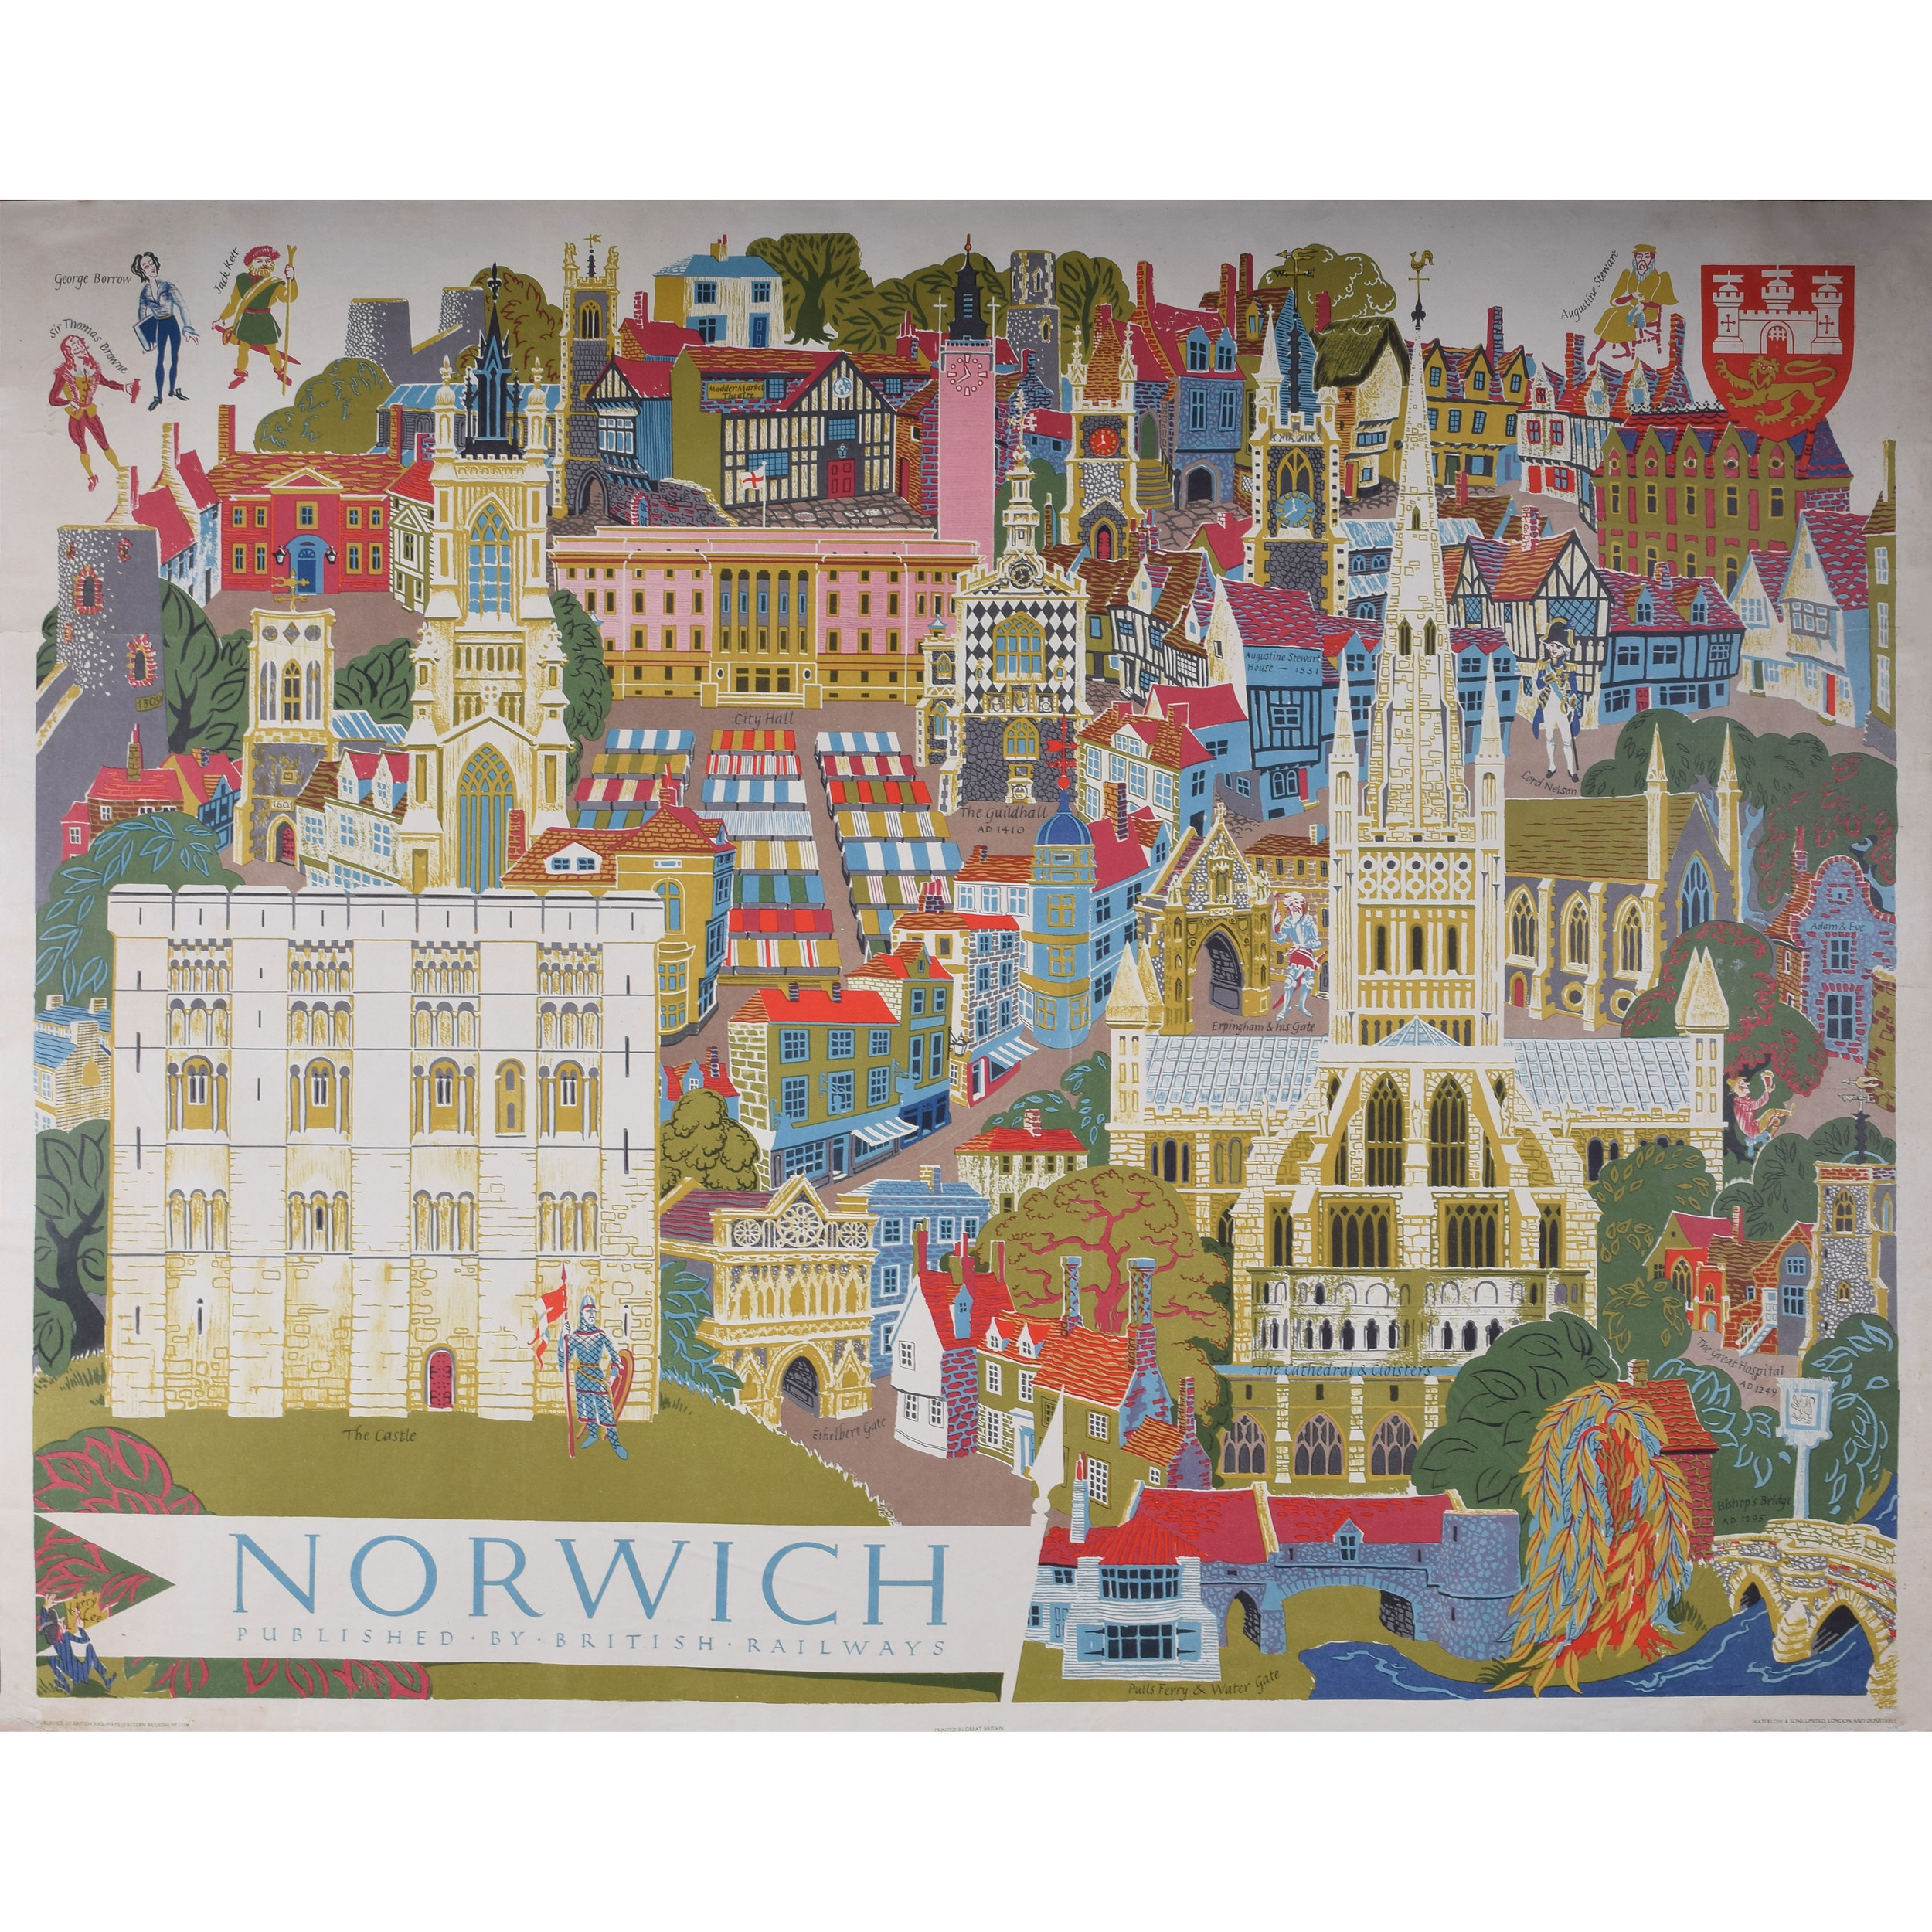 Kerry Lee Norwich poster for British Railways